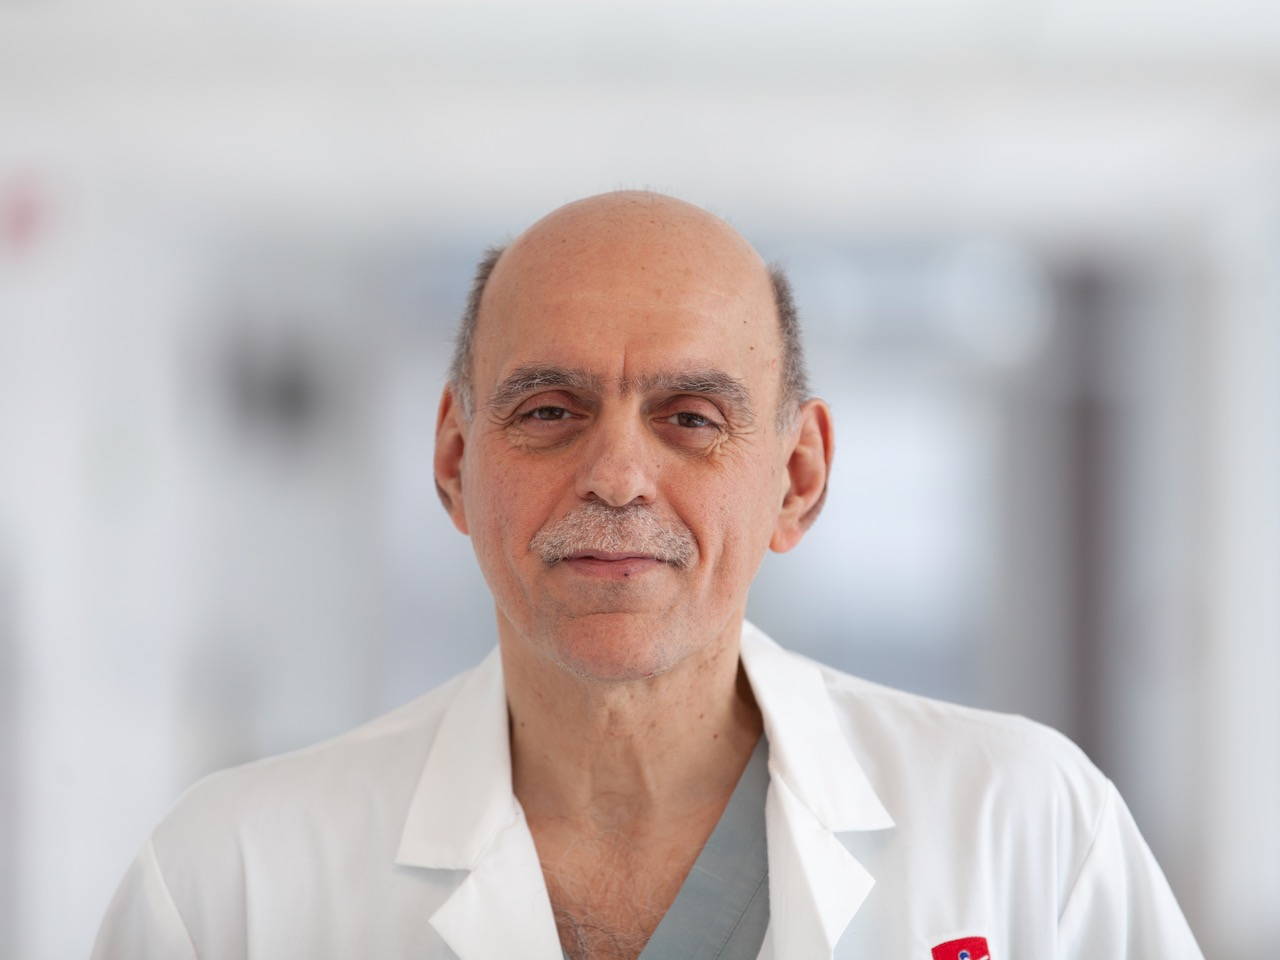 Image of doctor posing for a photo